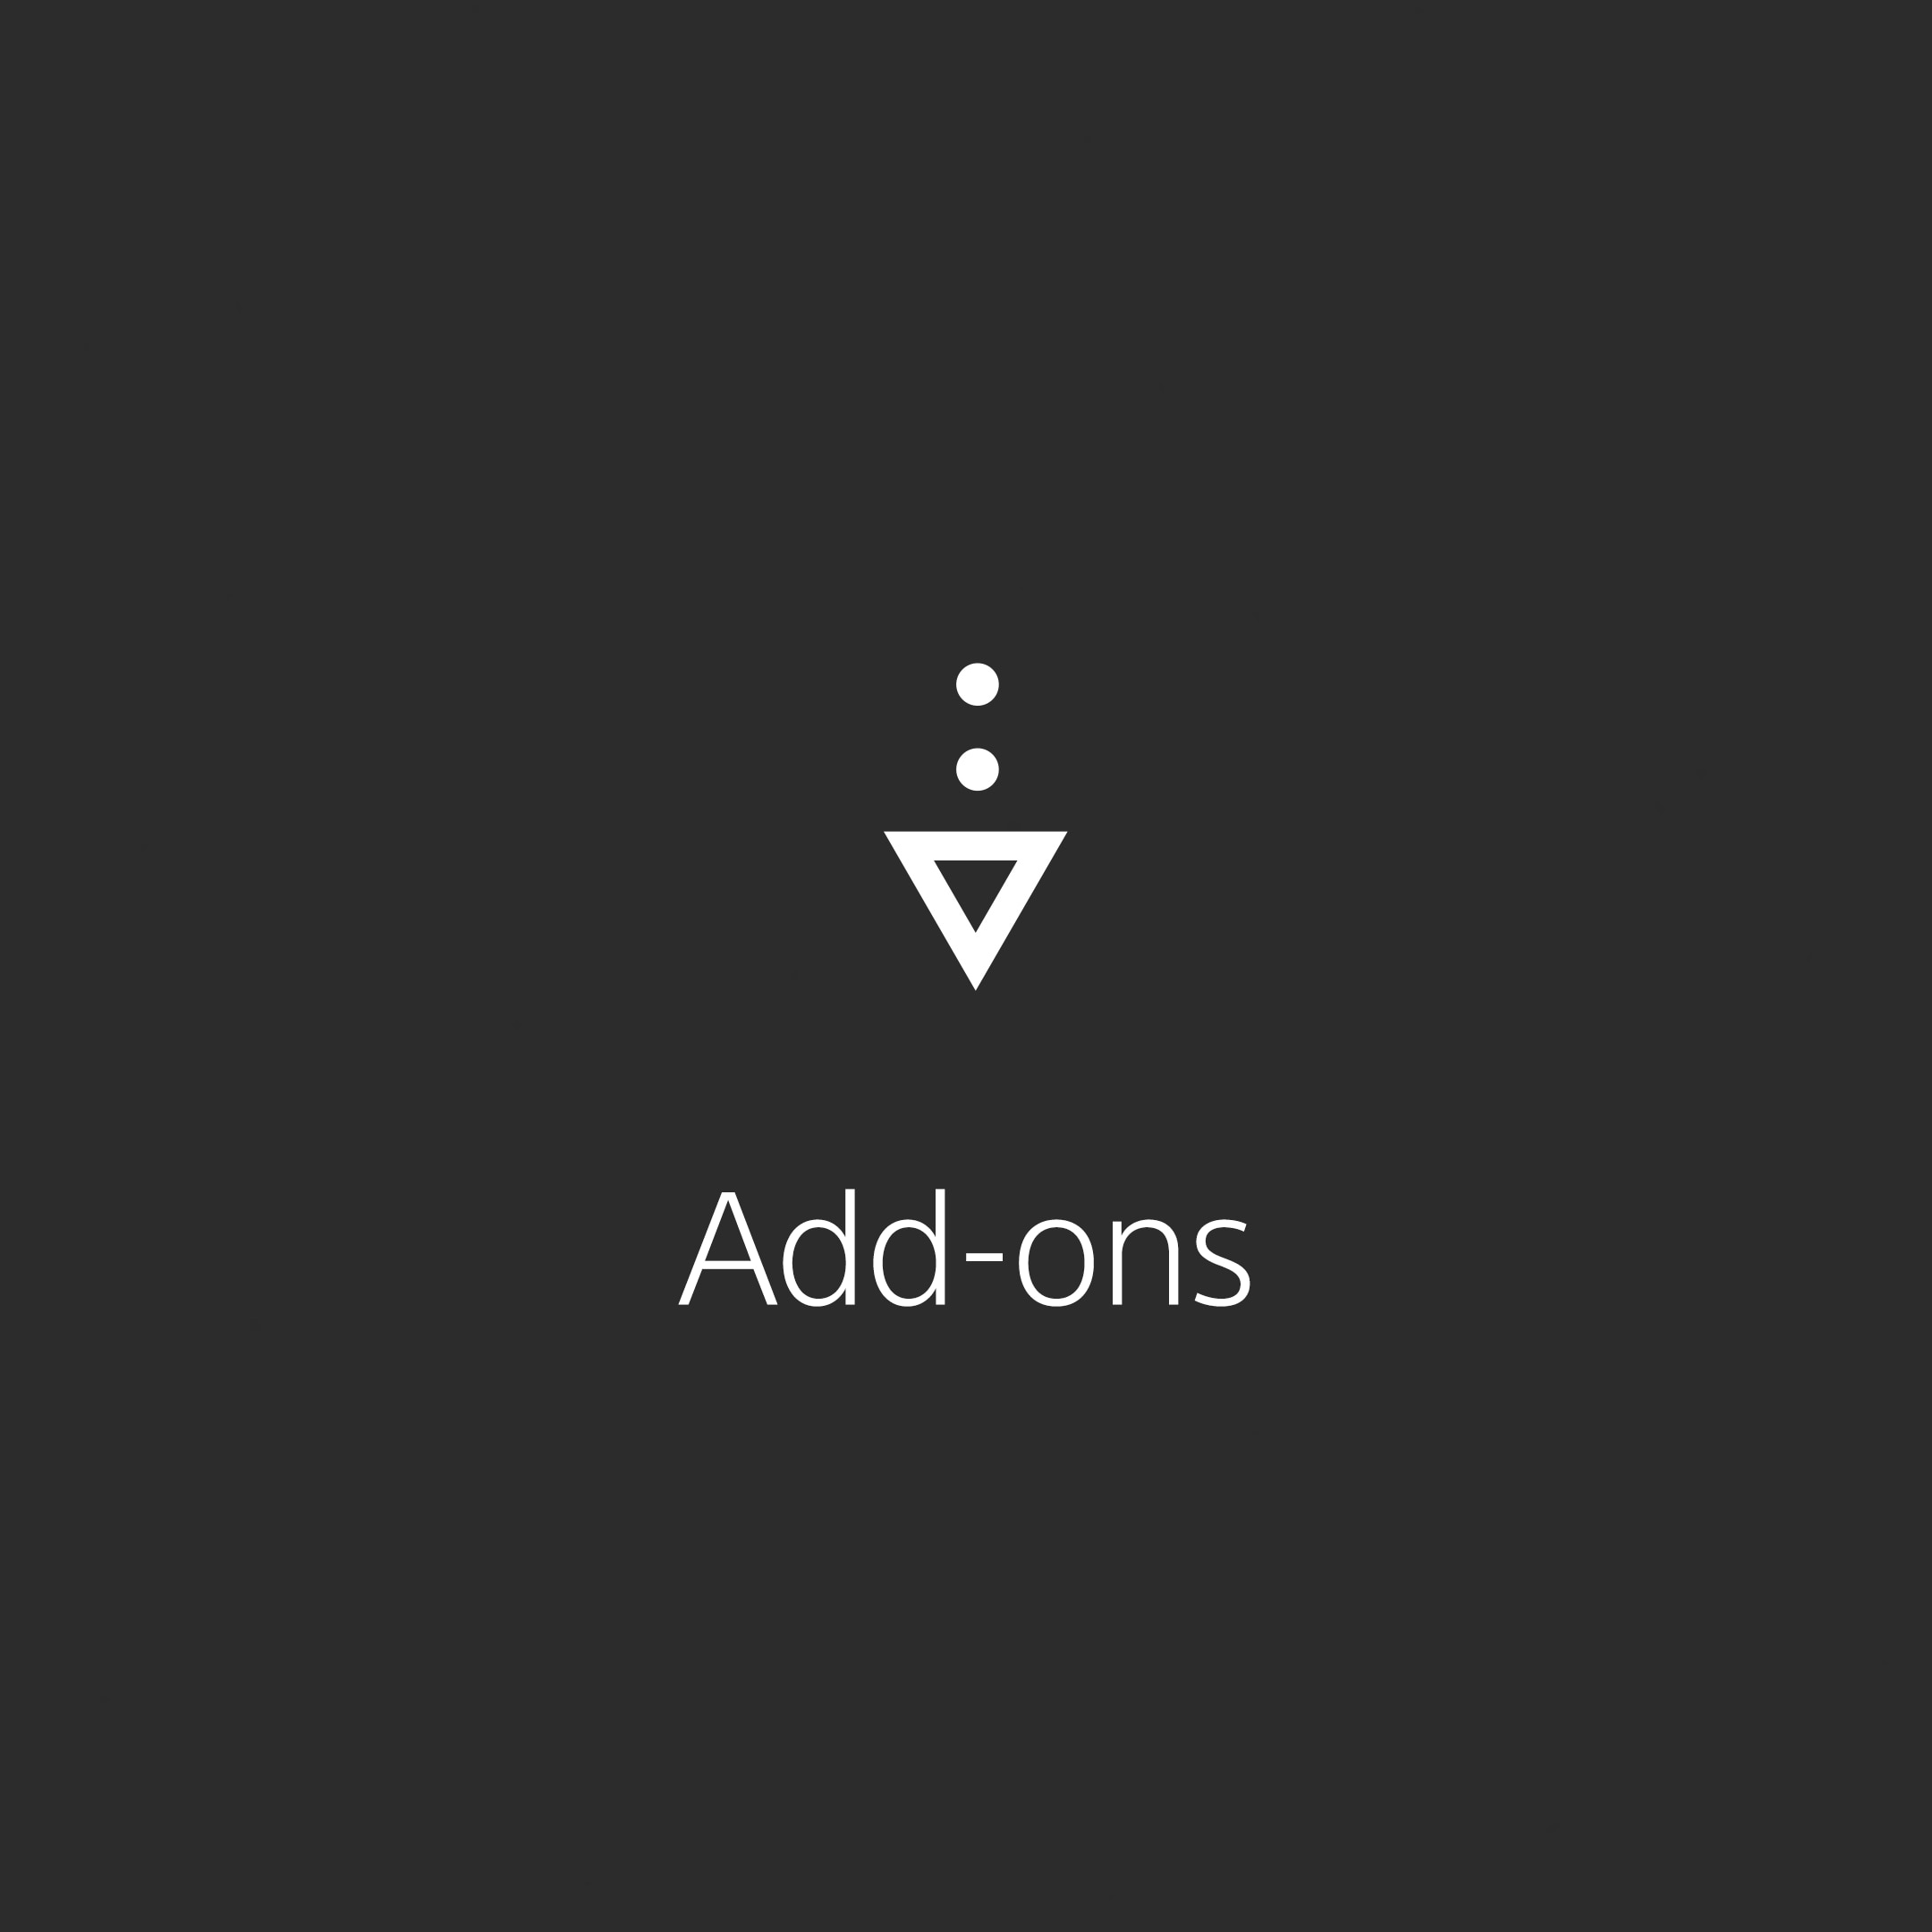 Add-ons - Quick Link